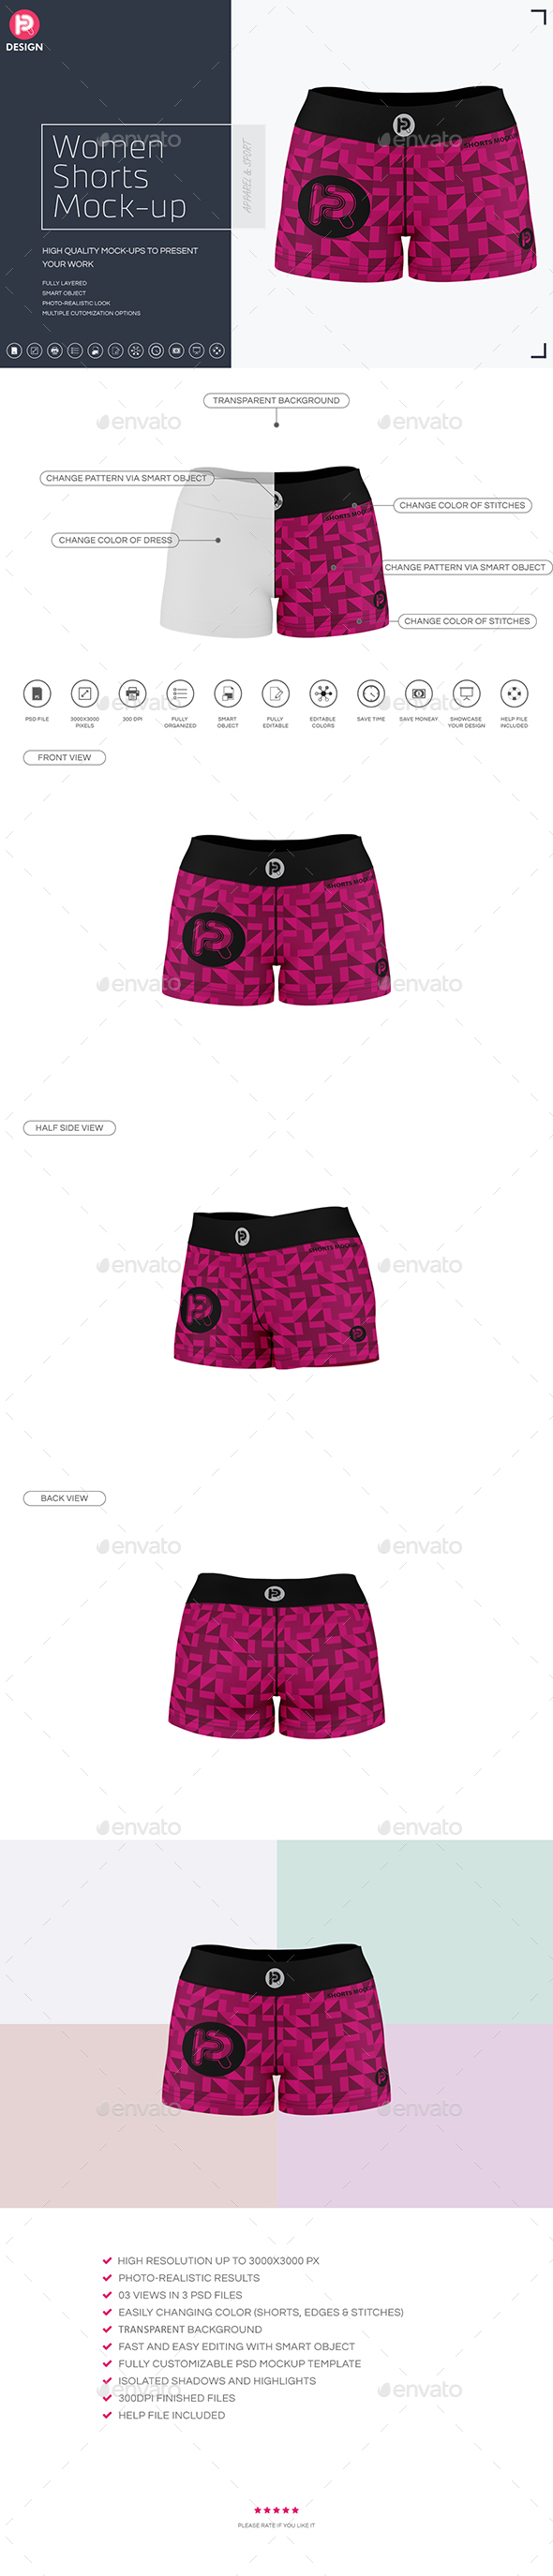 Women Shorts Mock-up - Miscellaneous Apparel